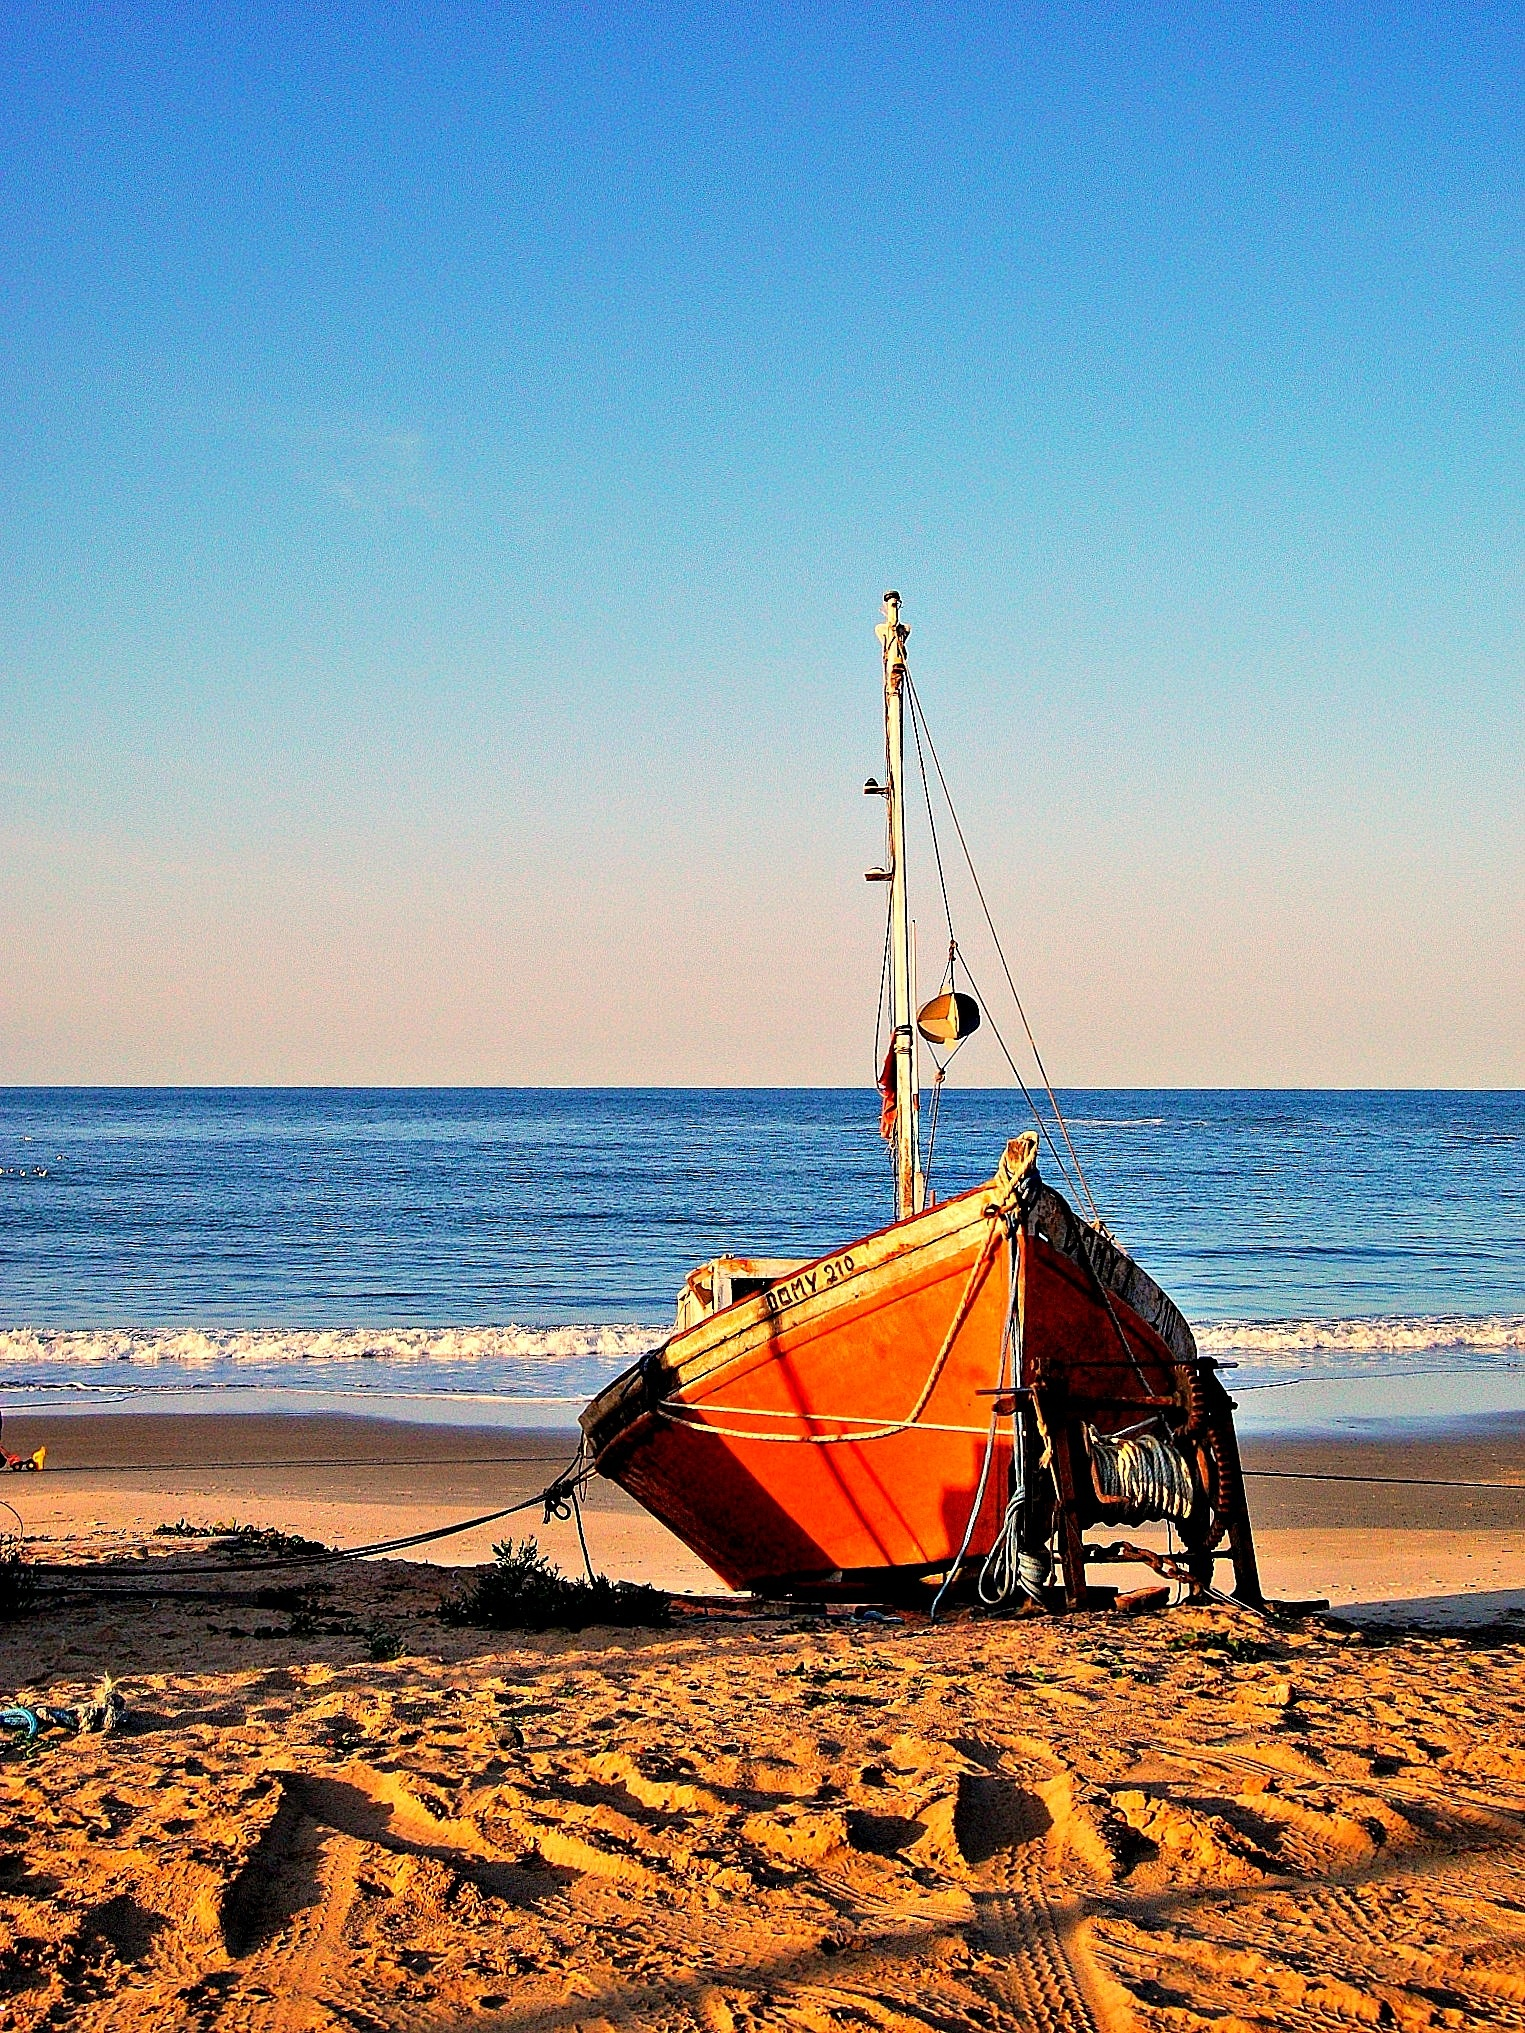 The fishing boat by maria.telegdy